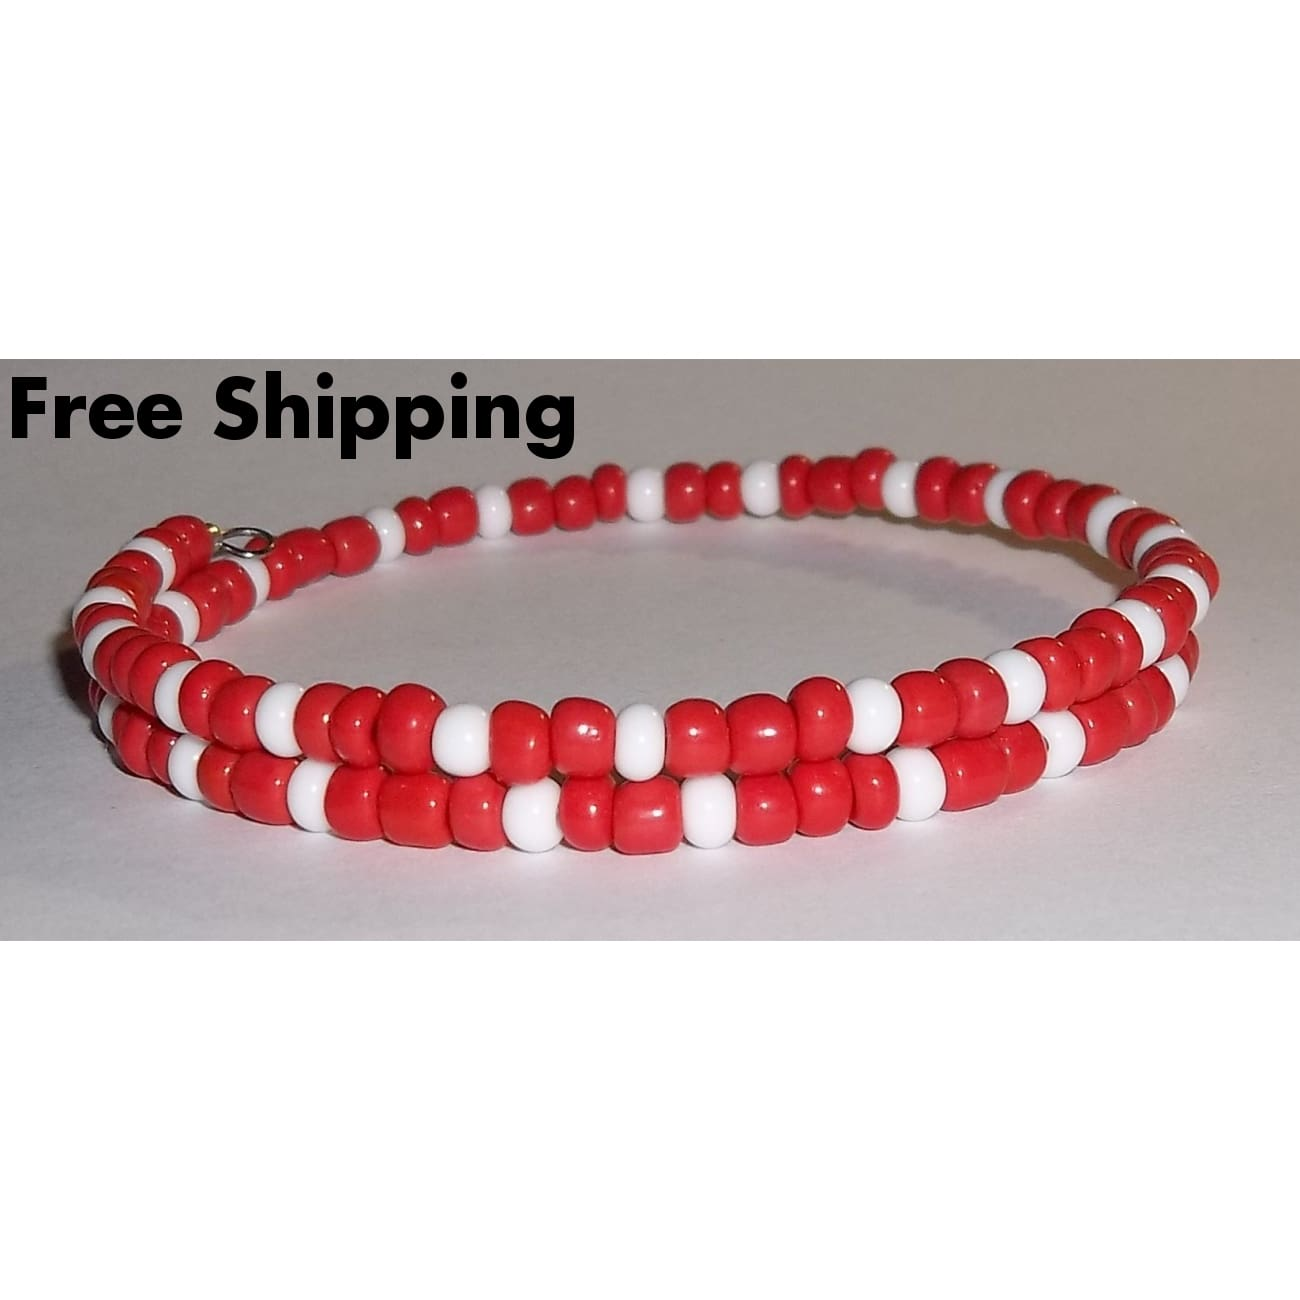 Plus Size Elegance Red-Orange & White Glass Beaded Artisan Crafted Stackable Bracelet - New Arrival